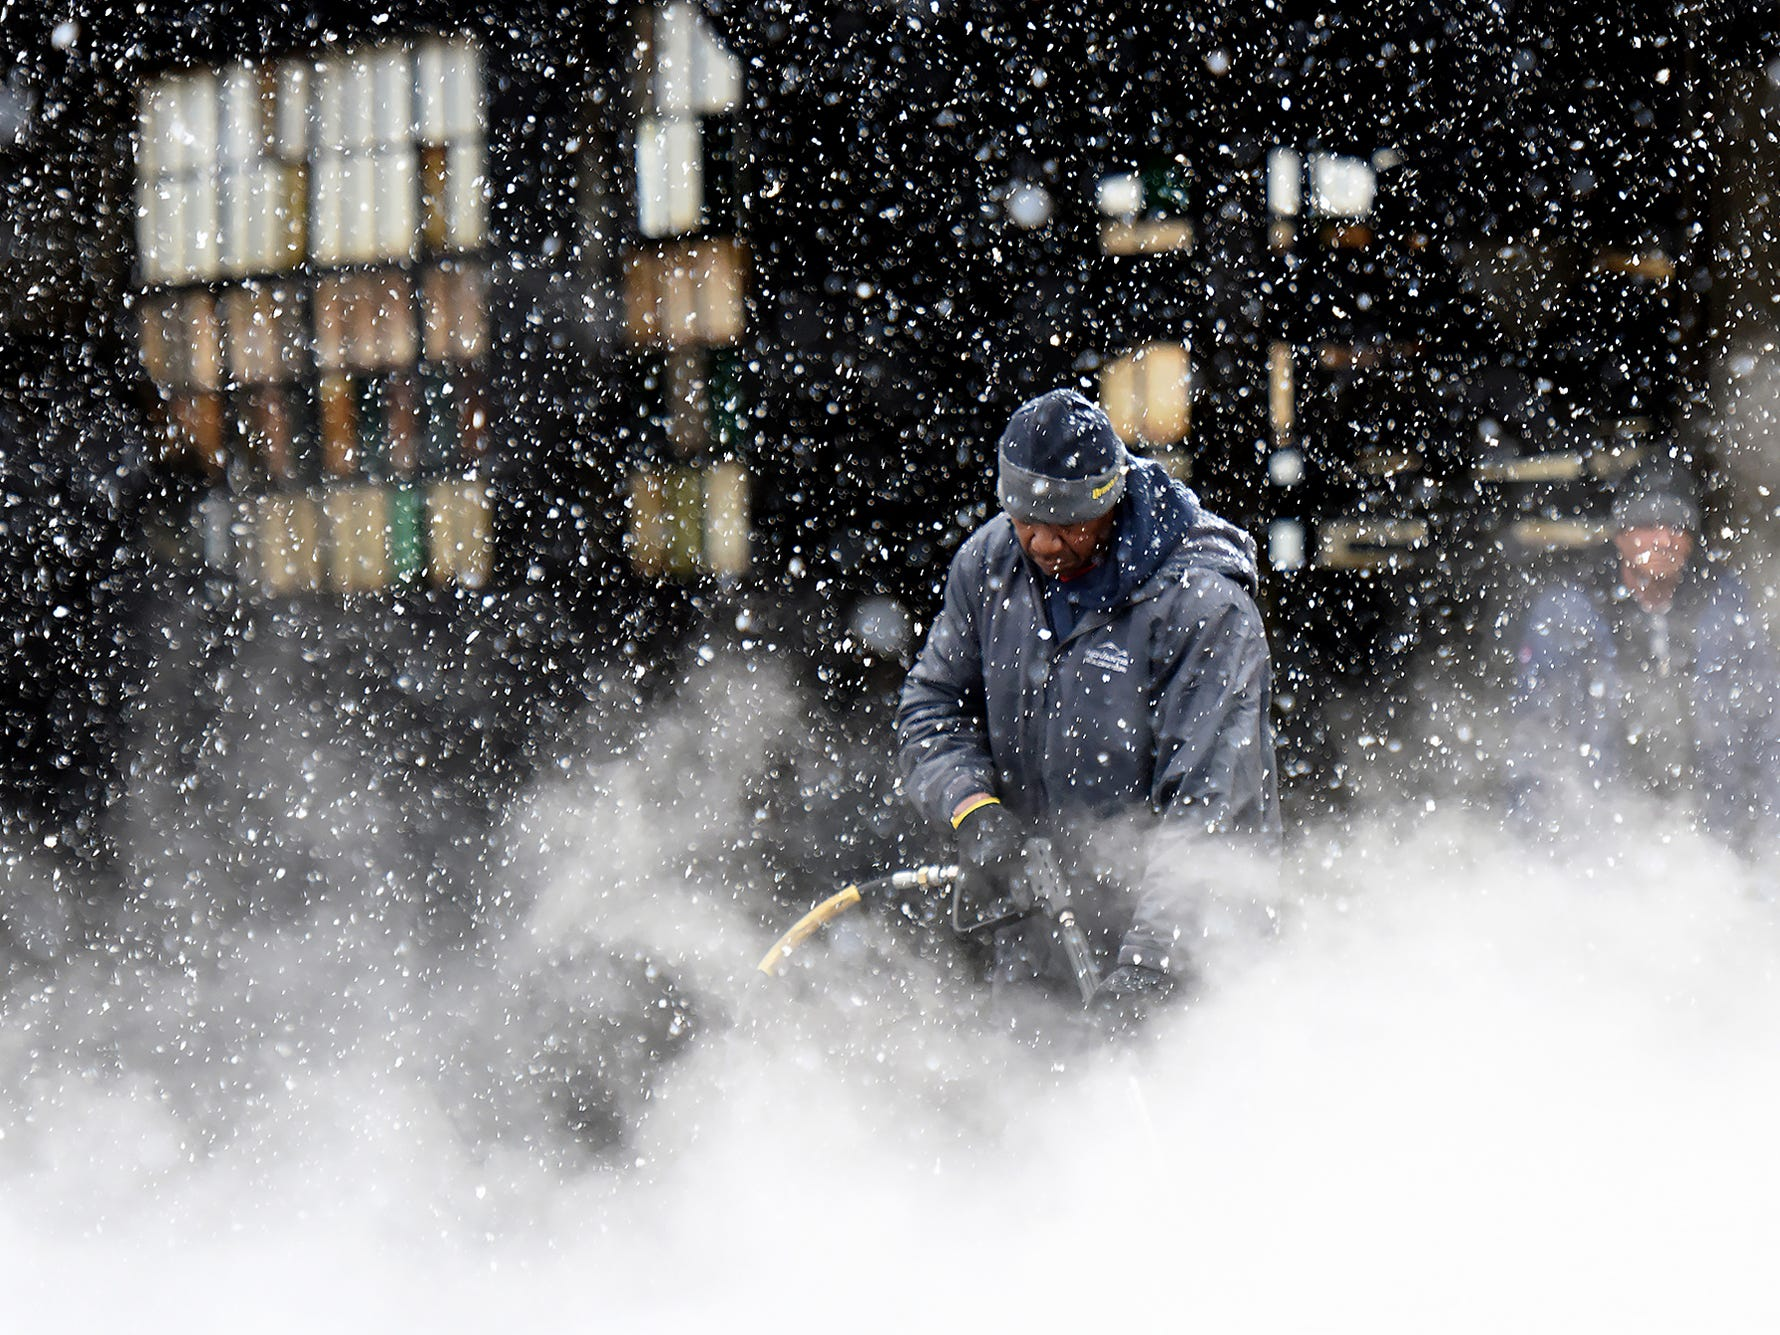 An employee power washes the yard at a business on Market St. in Paterson taking advantage of a slow day with no deliveries on Wednesday, March 7, 2018.